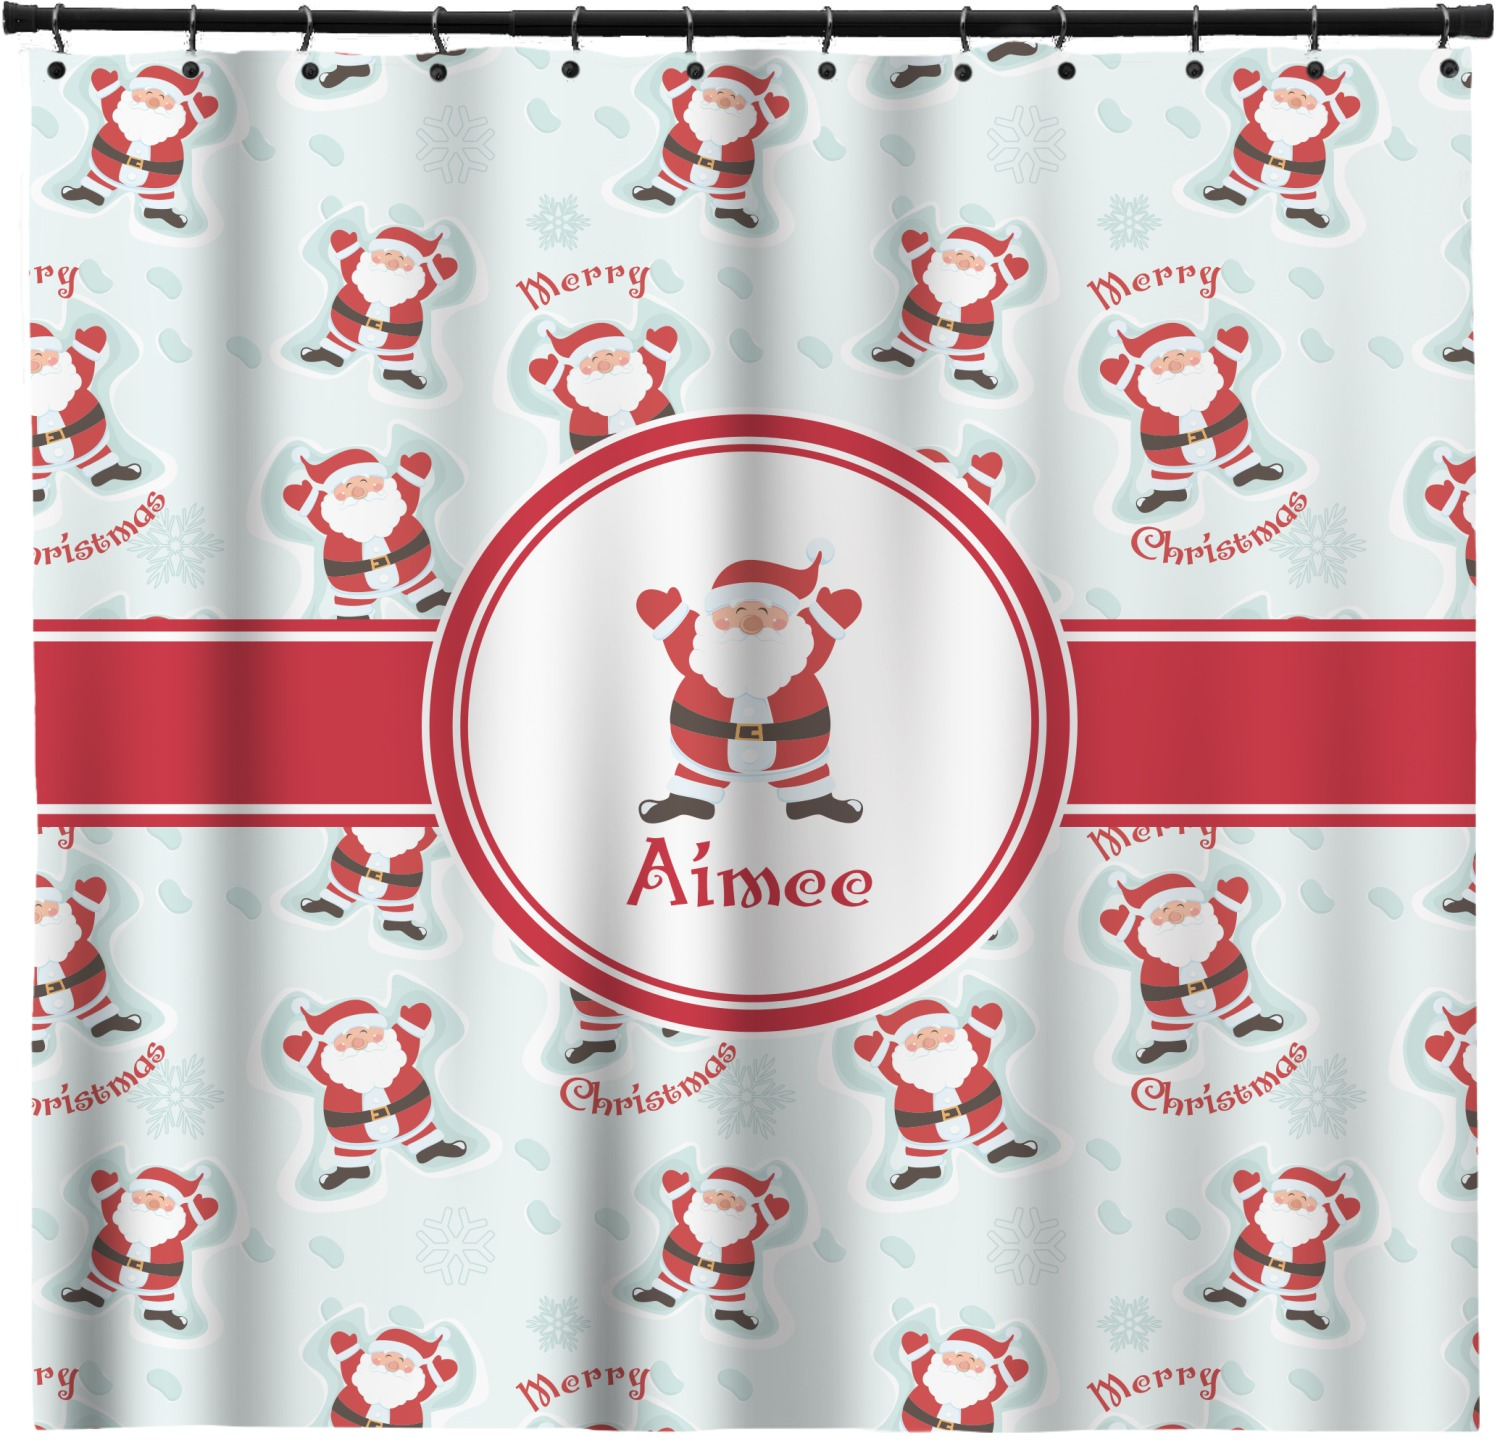 Santa Claus Shower Curtain Personalized